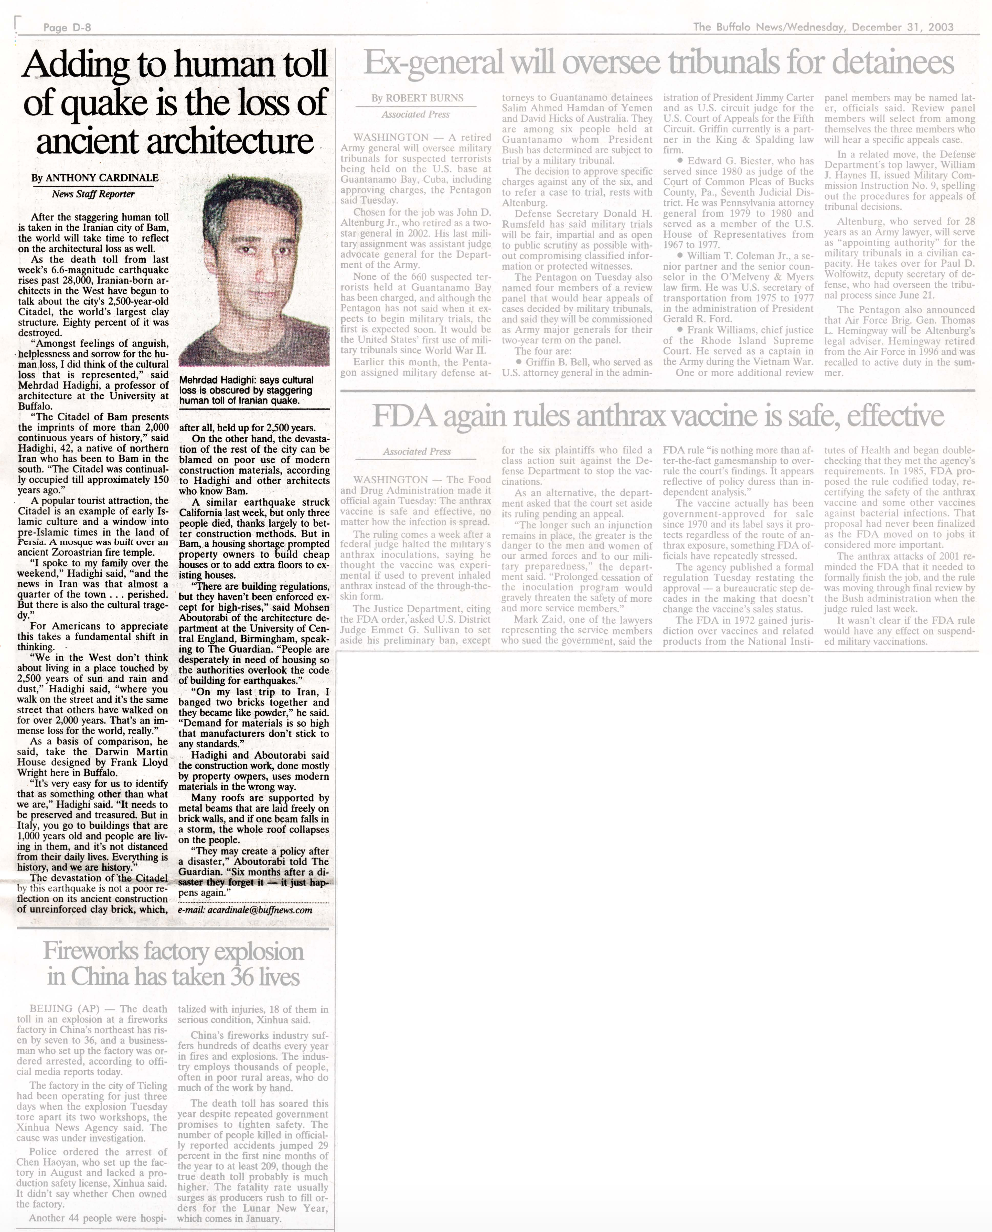 Buffalo News Dec 31 2003.png